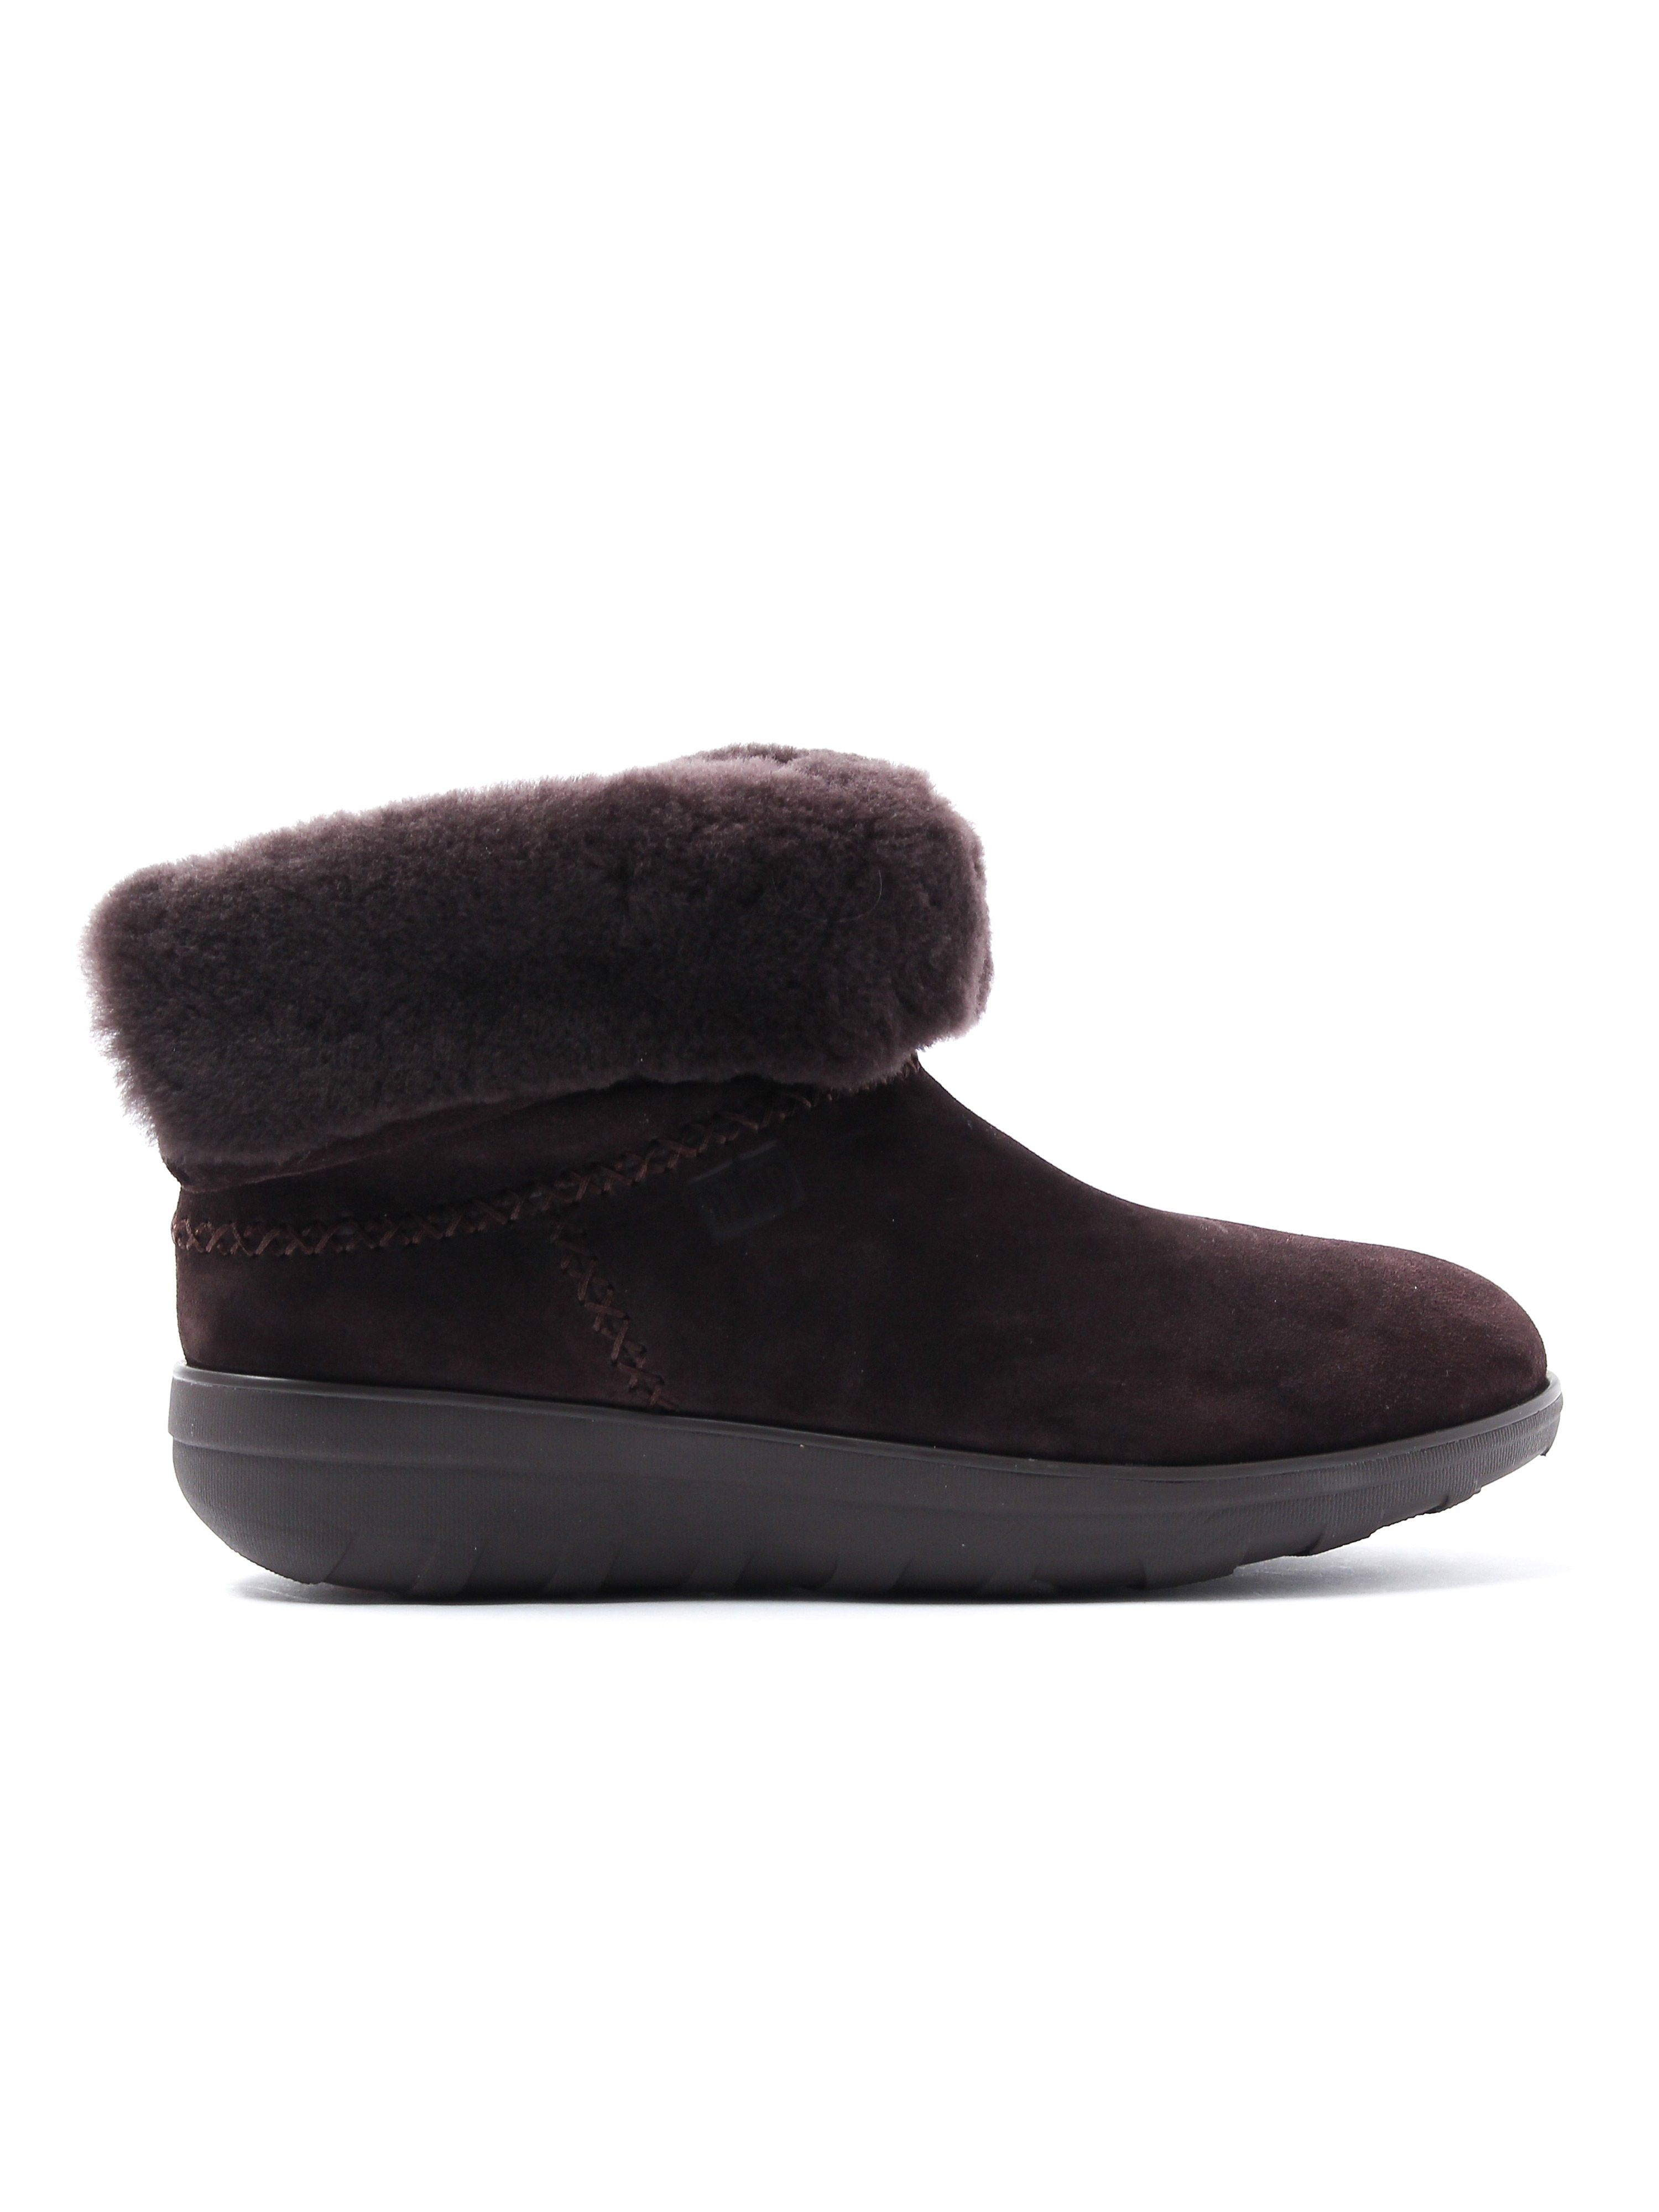 FitFlop Women's Shorty 2 Boots - Chocolate Suede